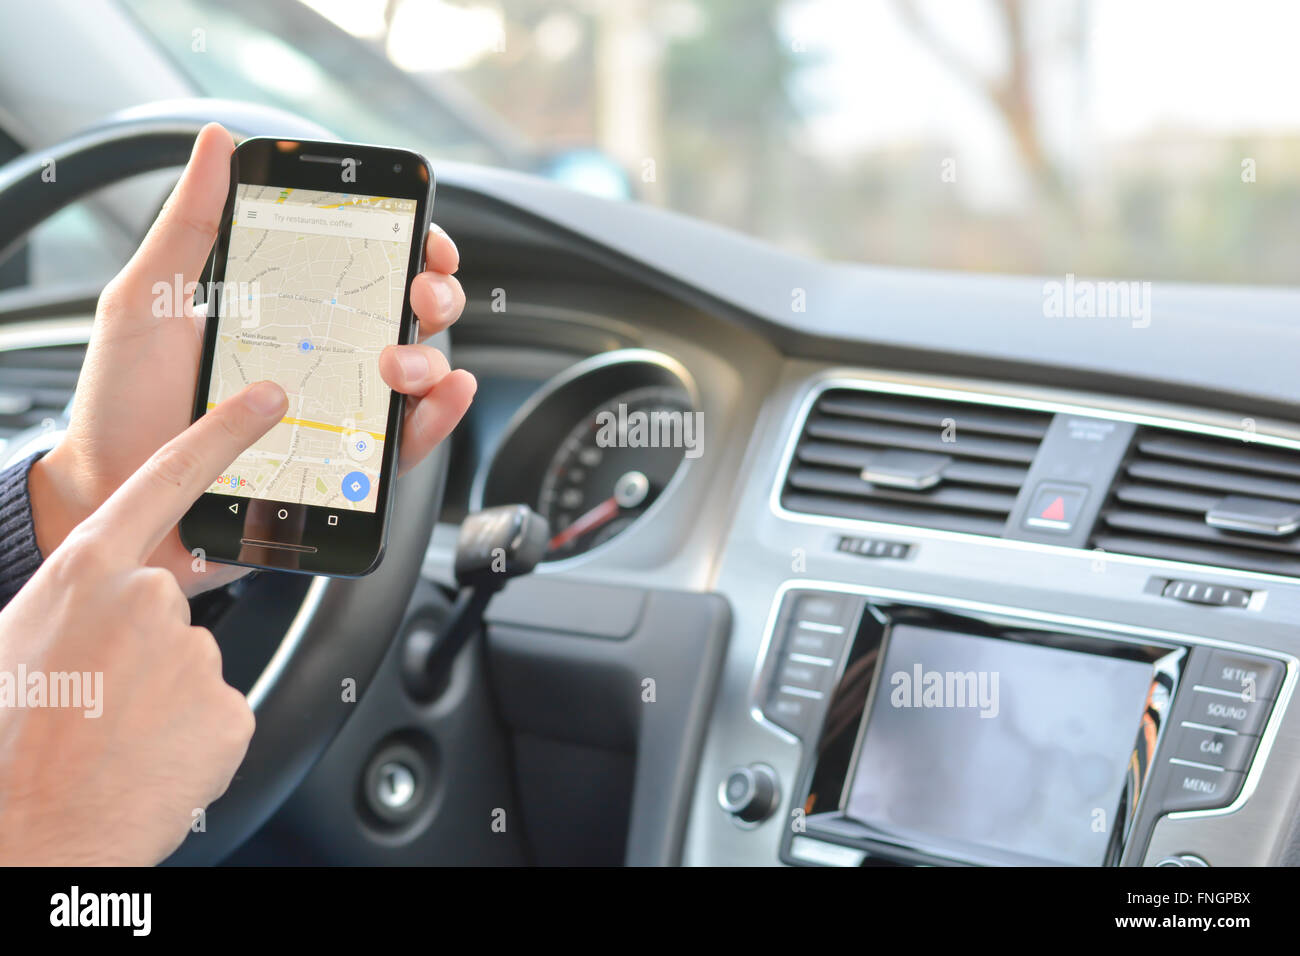 Smartphone hold by man with navigation map inside a car - Stock Image